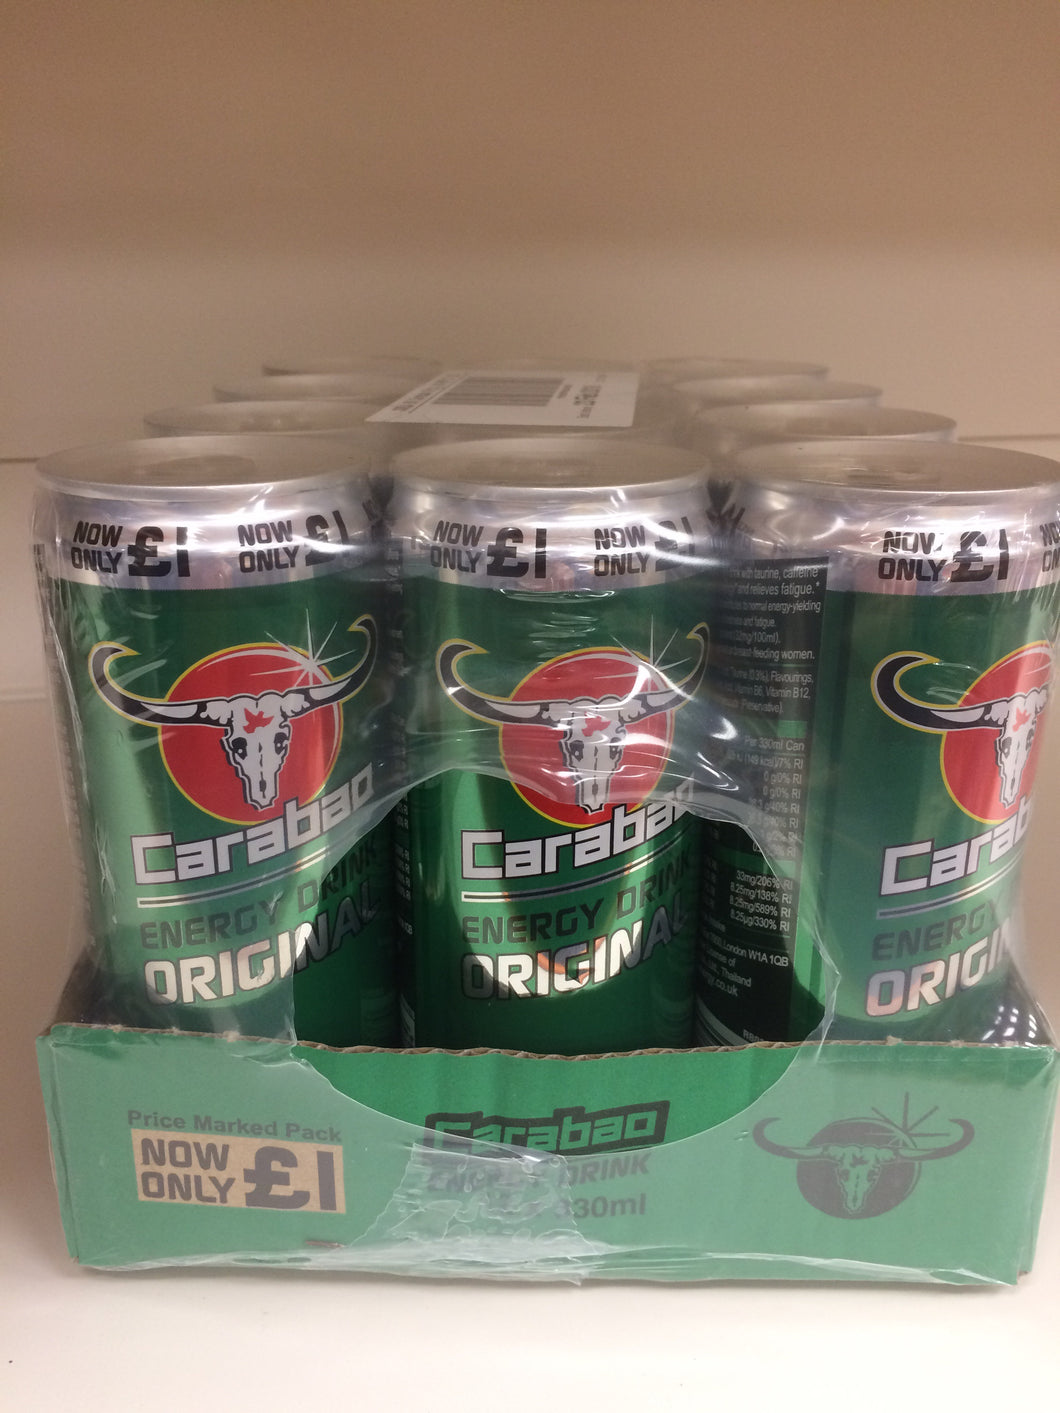 Carabao Energy Drink Original Case of 12x 330ml